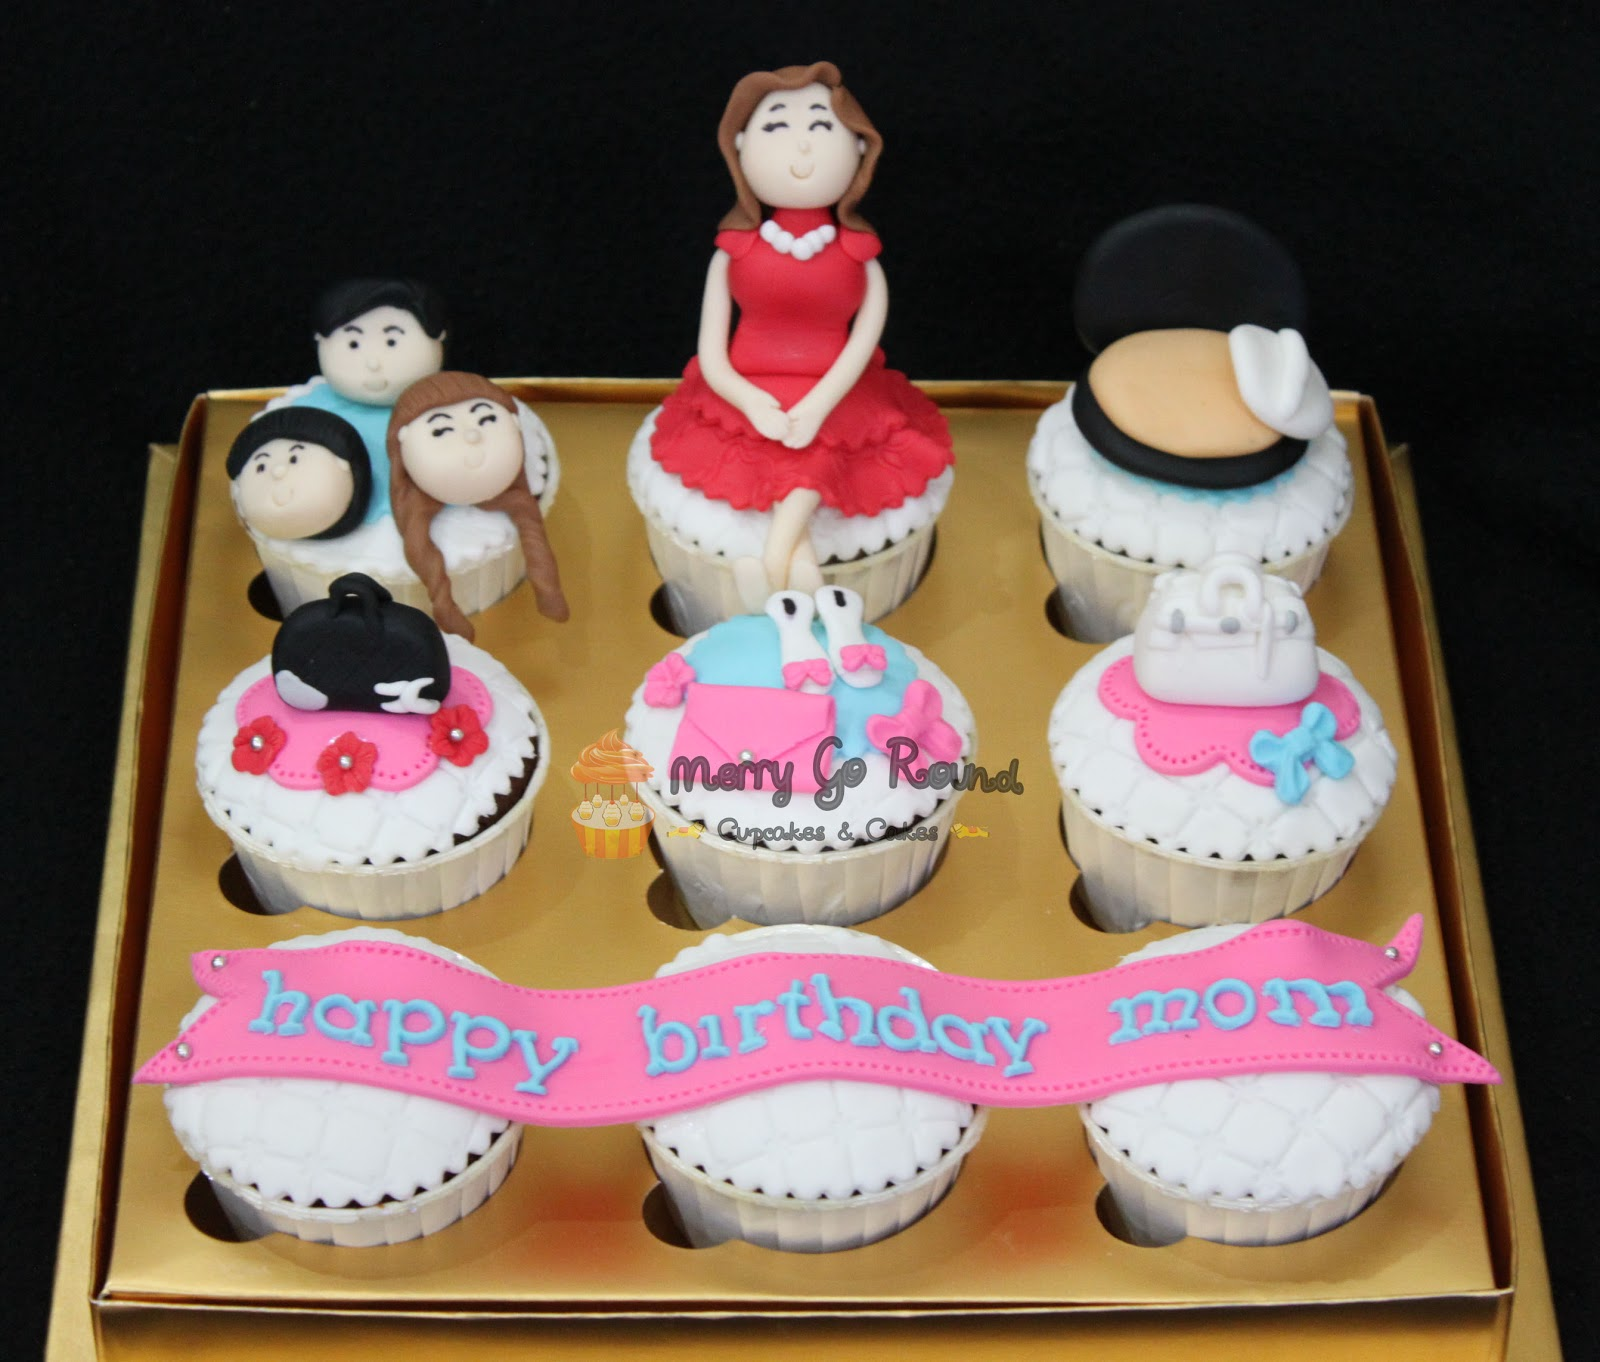 Merry Go Round Cupcakes Cakes Birthday Cupcakes for